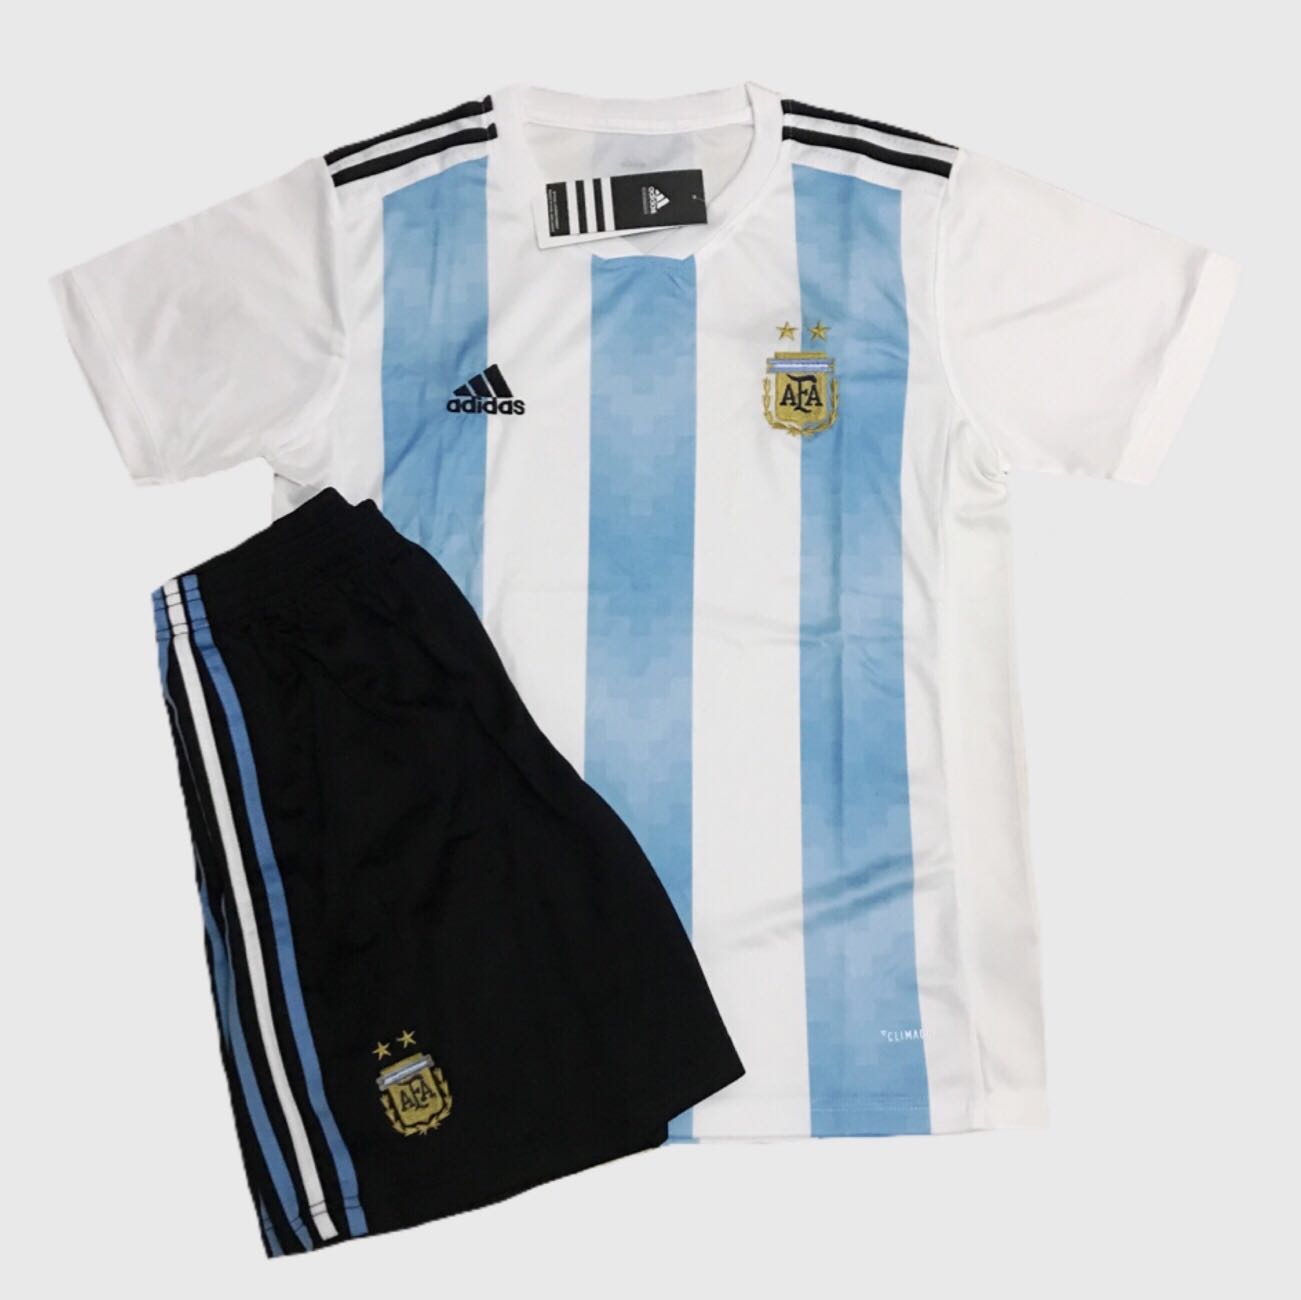 ff05b9363 ❗️SALE❗️Argentina 2018 World Cup Home Away Jersey Kit